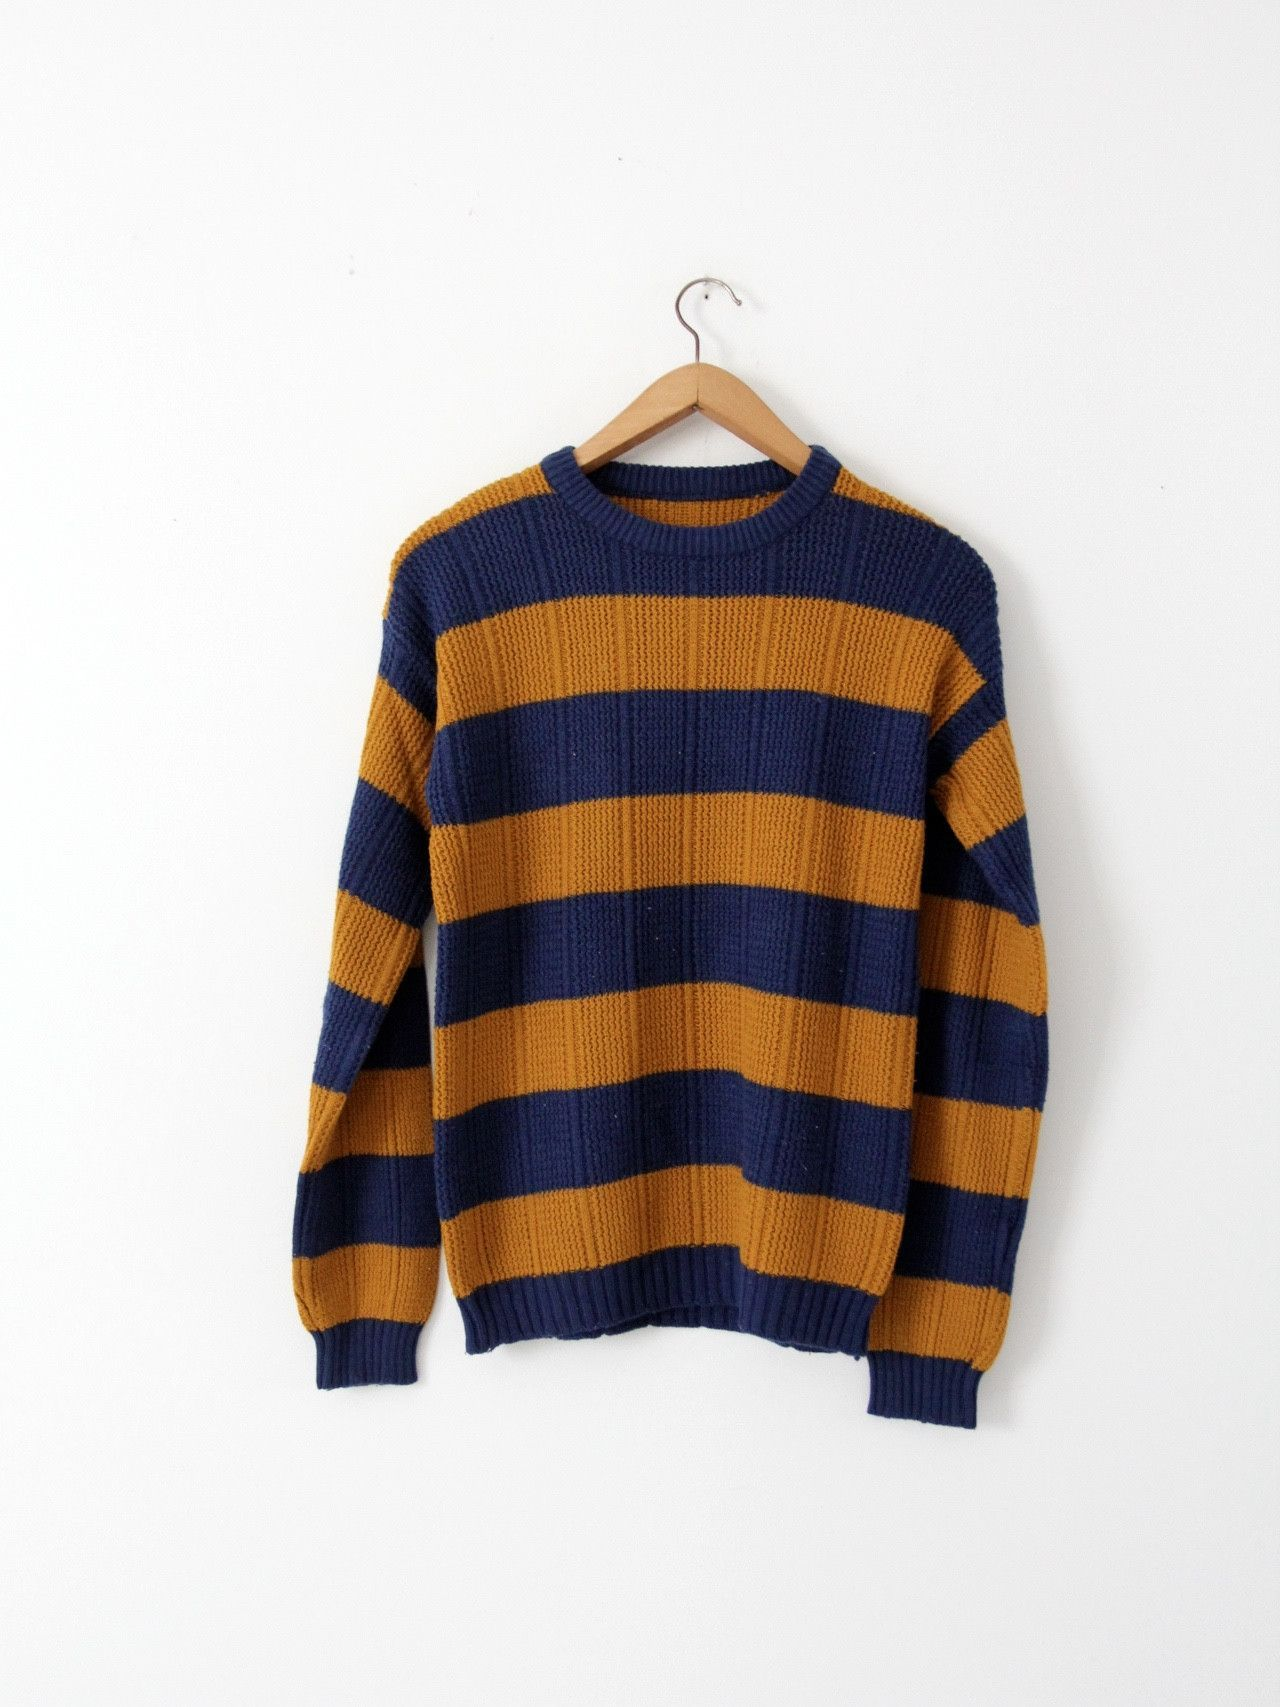 A 1970s vintage striped knit sweater. The ribbed knit crew neck sweater  features bold blue and gold horizontal stripes. - blue and gold - acrylic  or cotton ... 0ccfd8907